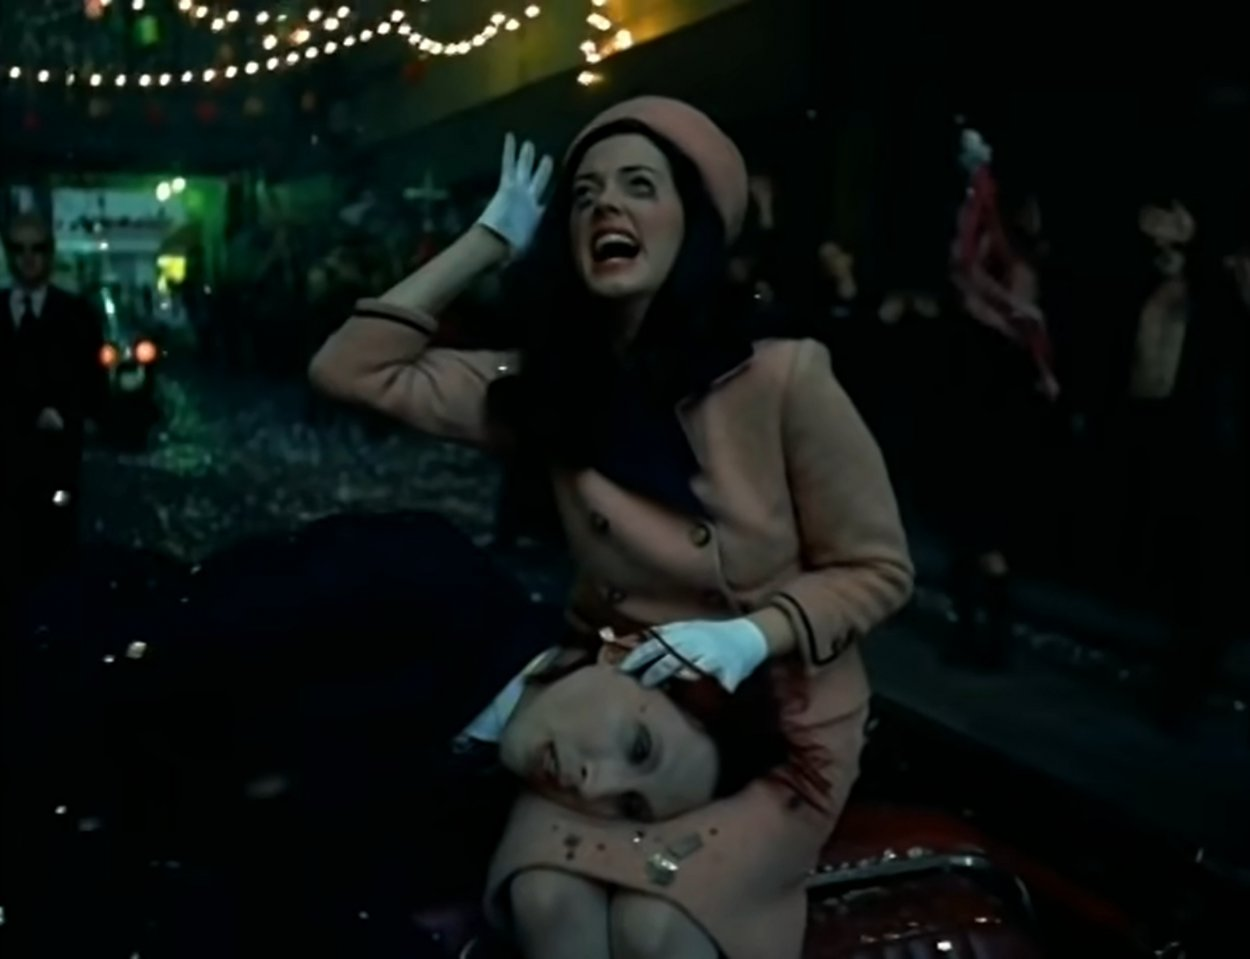 """Marilyn Manson as JFK having just been shot, lying in the lap of Rose McGowan as a distraught Jacqueline Kennedy, in the """"Coma White"""" music video"""